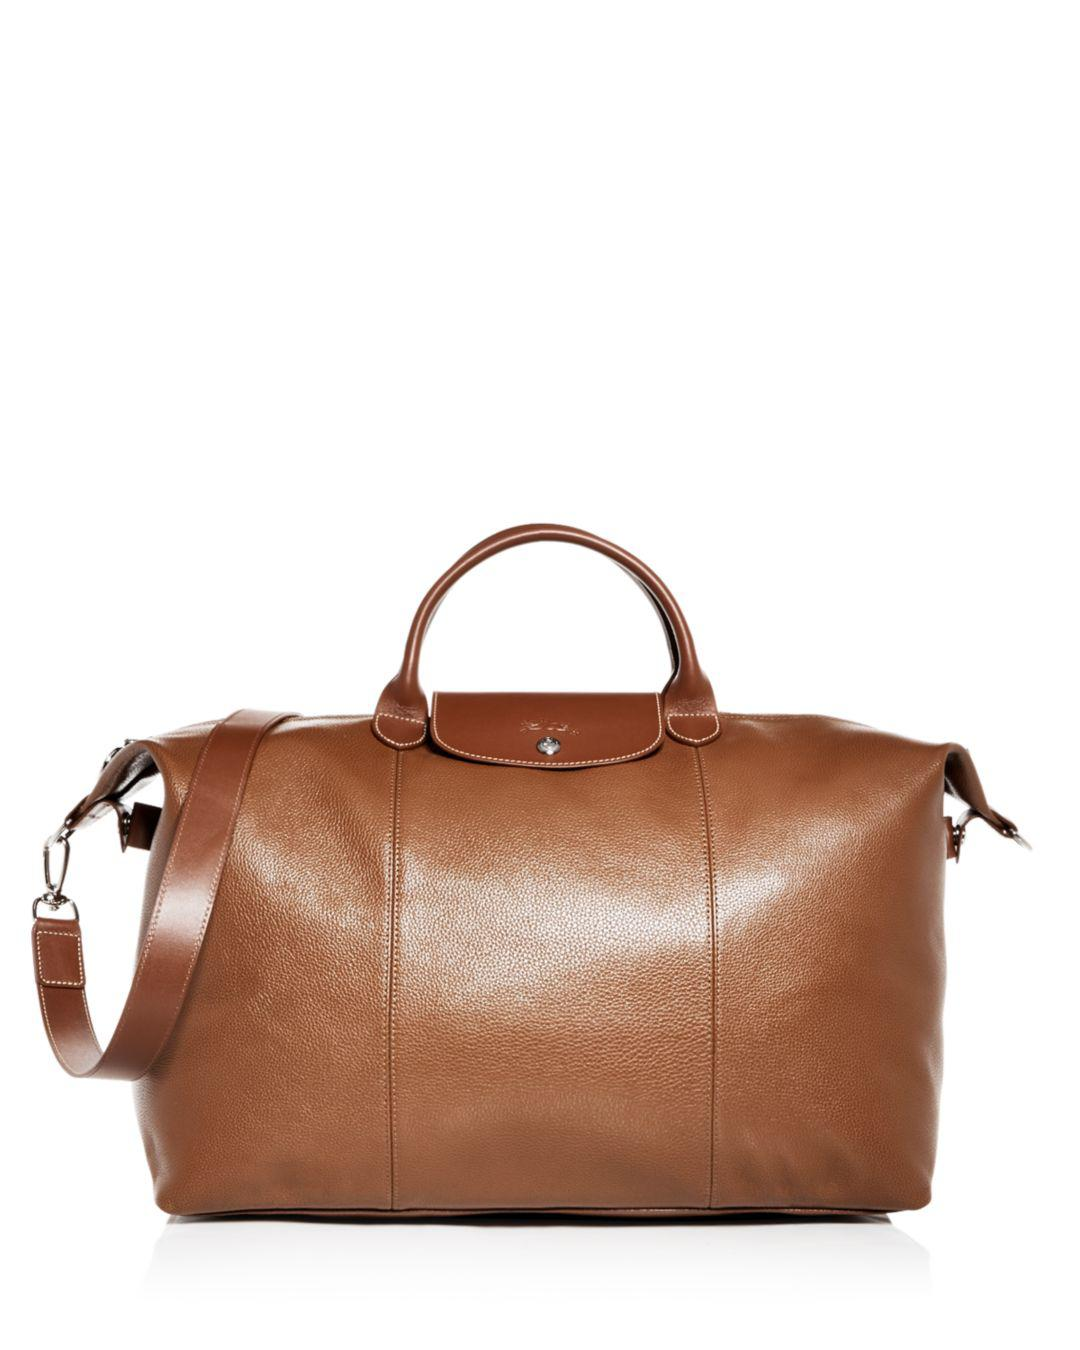 Lyst - Longchamp Le Foulonné Leather Duffel Bag in Brown for Men c8bb50ee2f7af